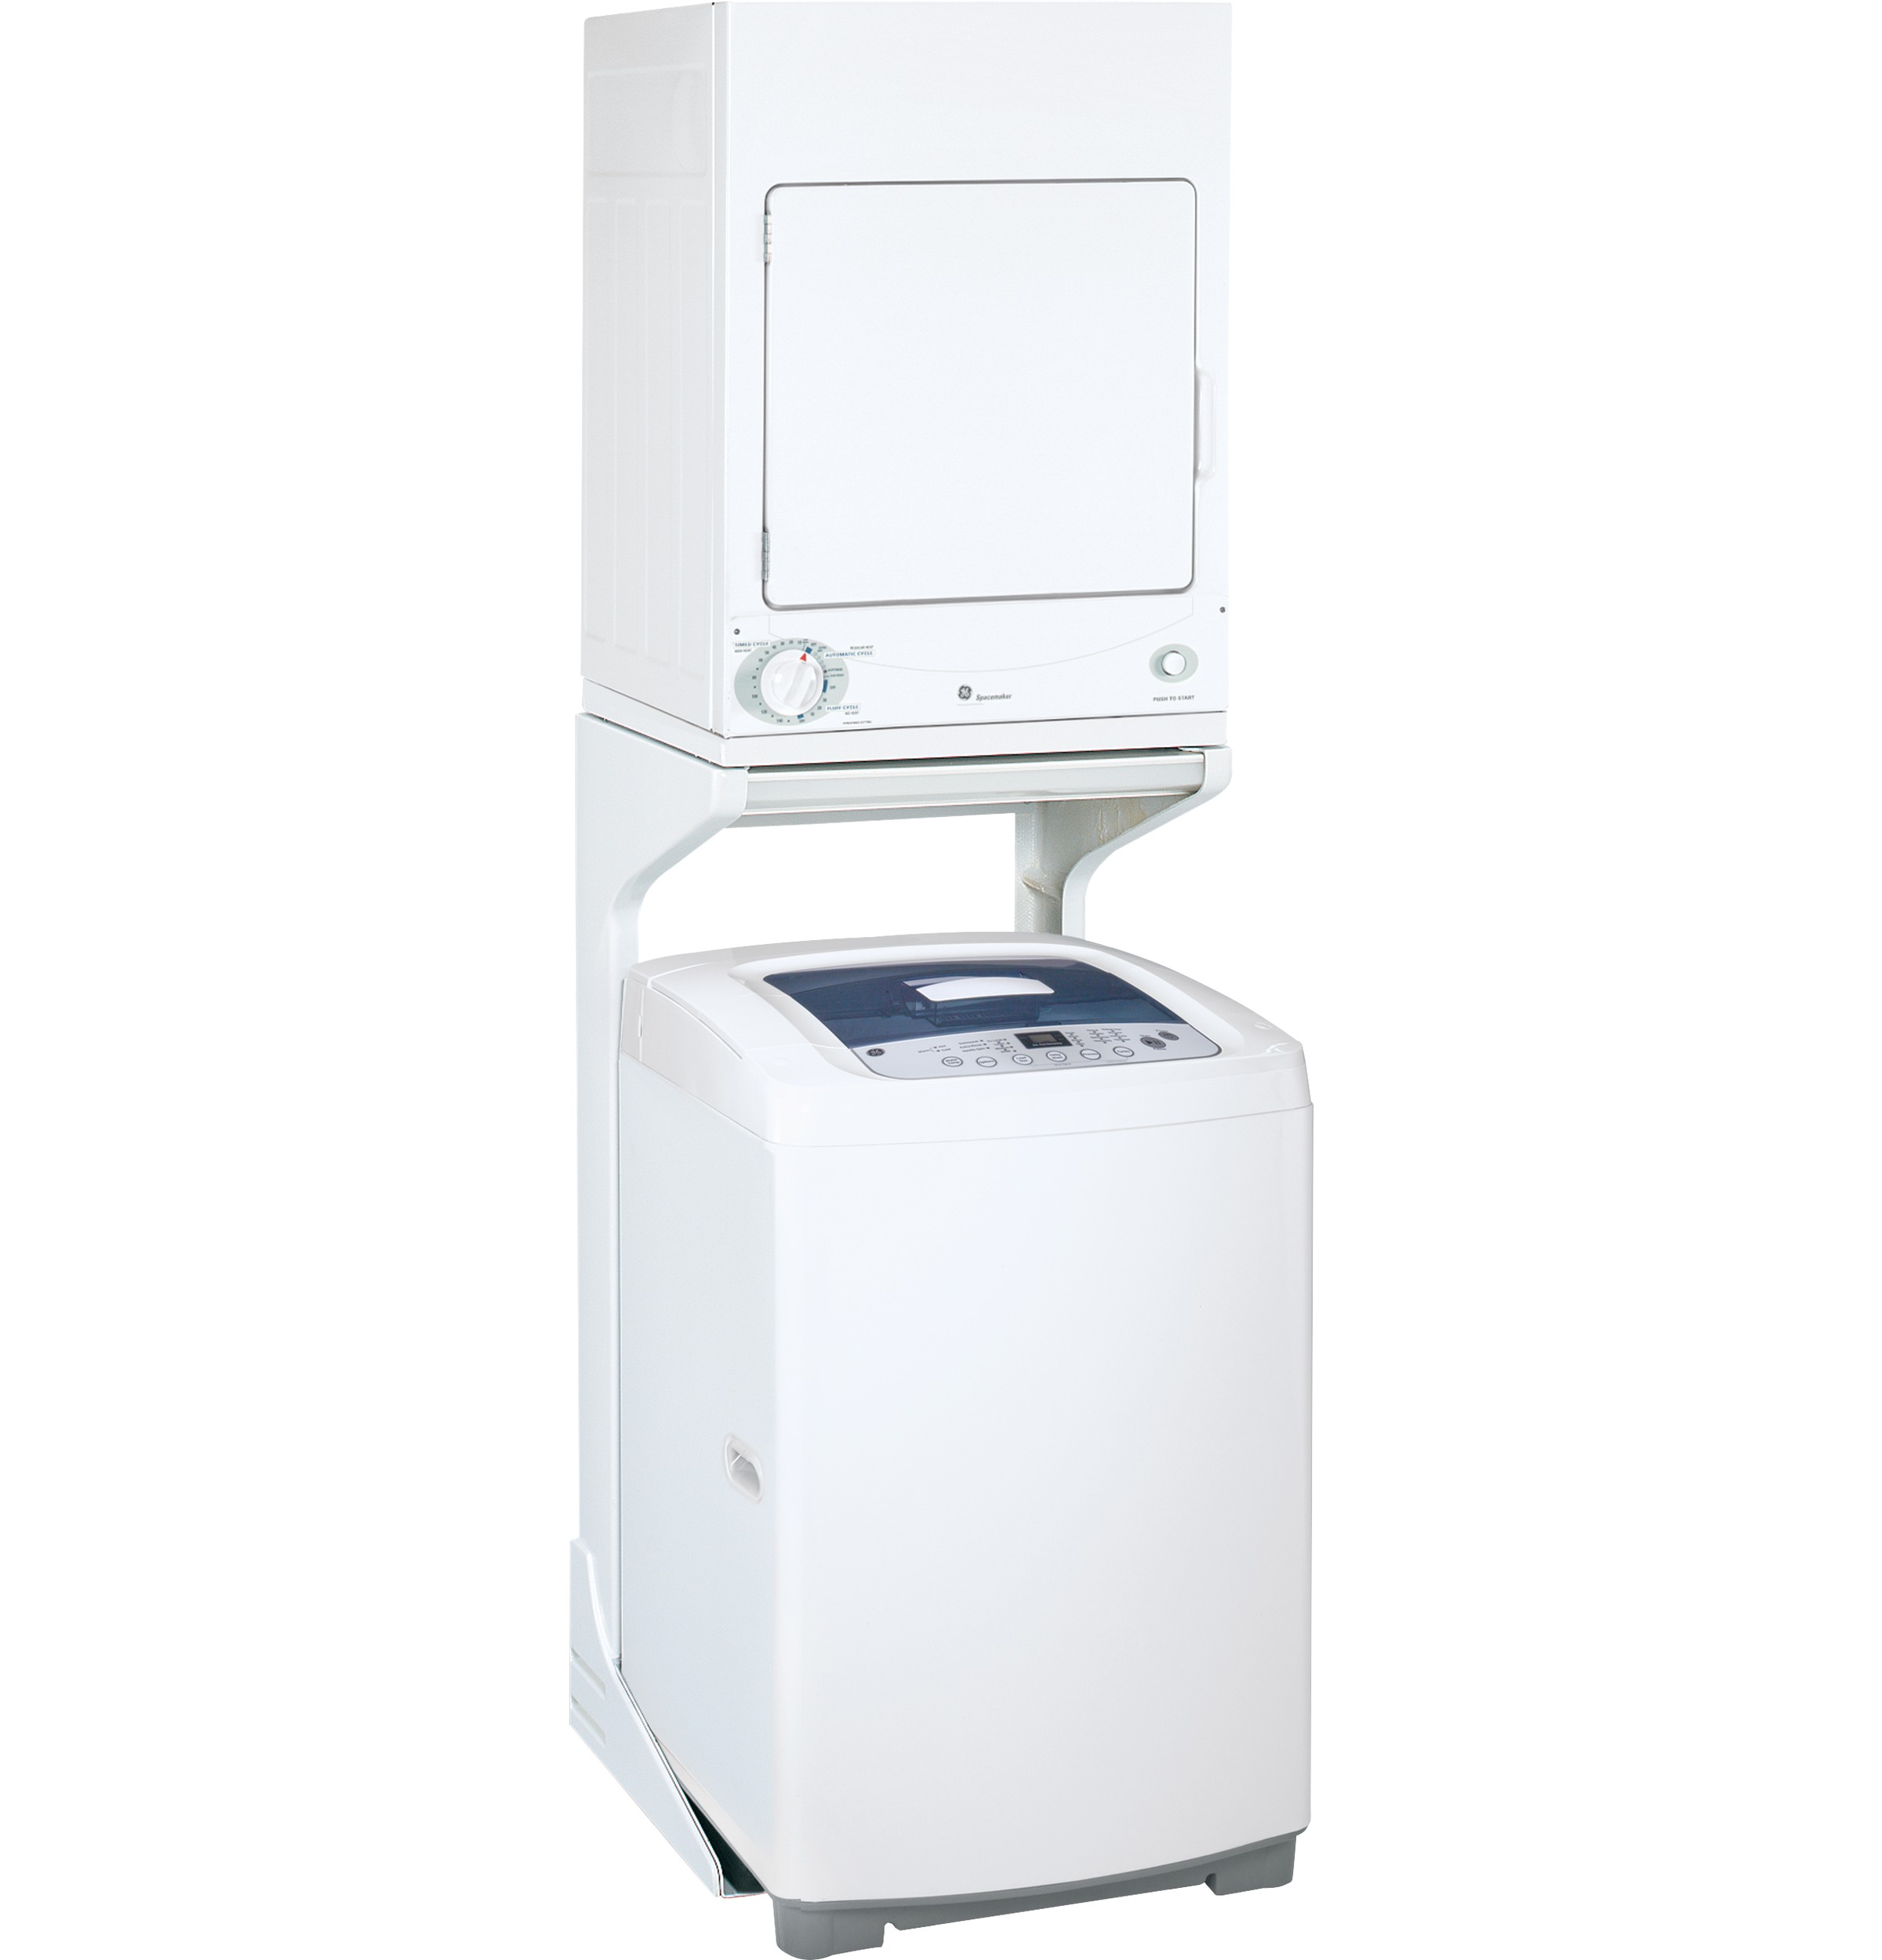 Apartment Size Washer and Dryer Stackable | HomesFeed